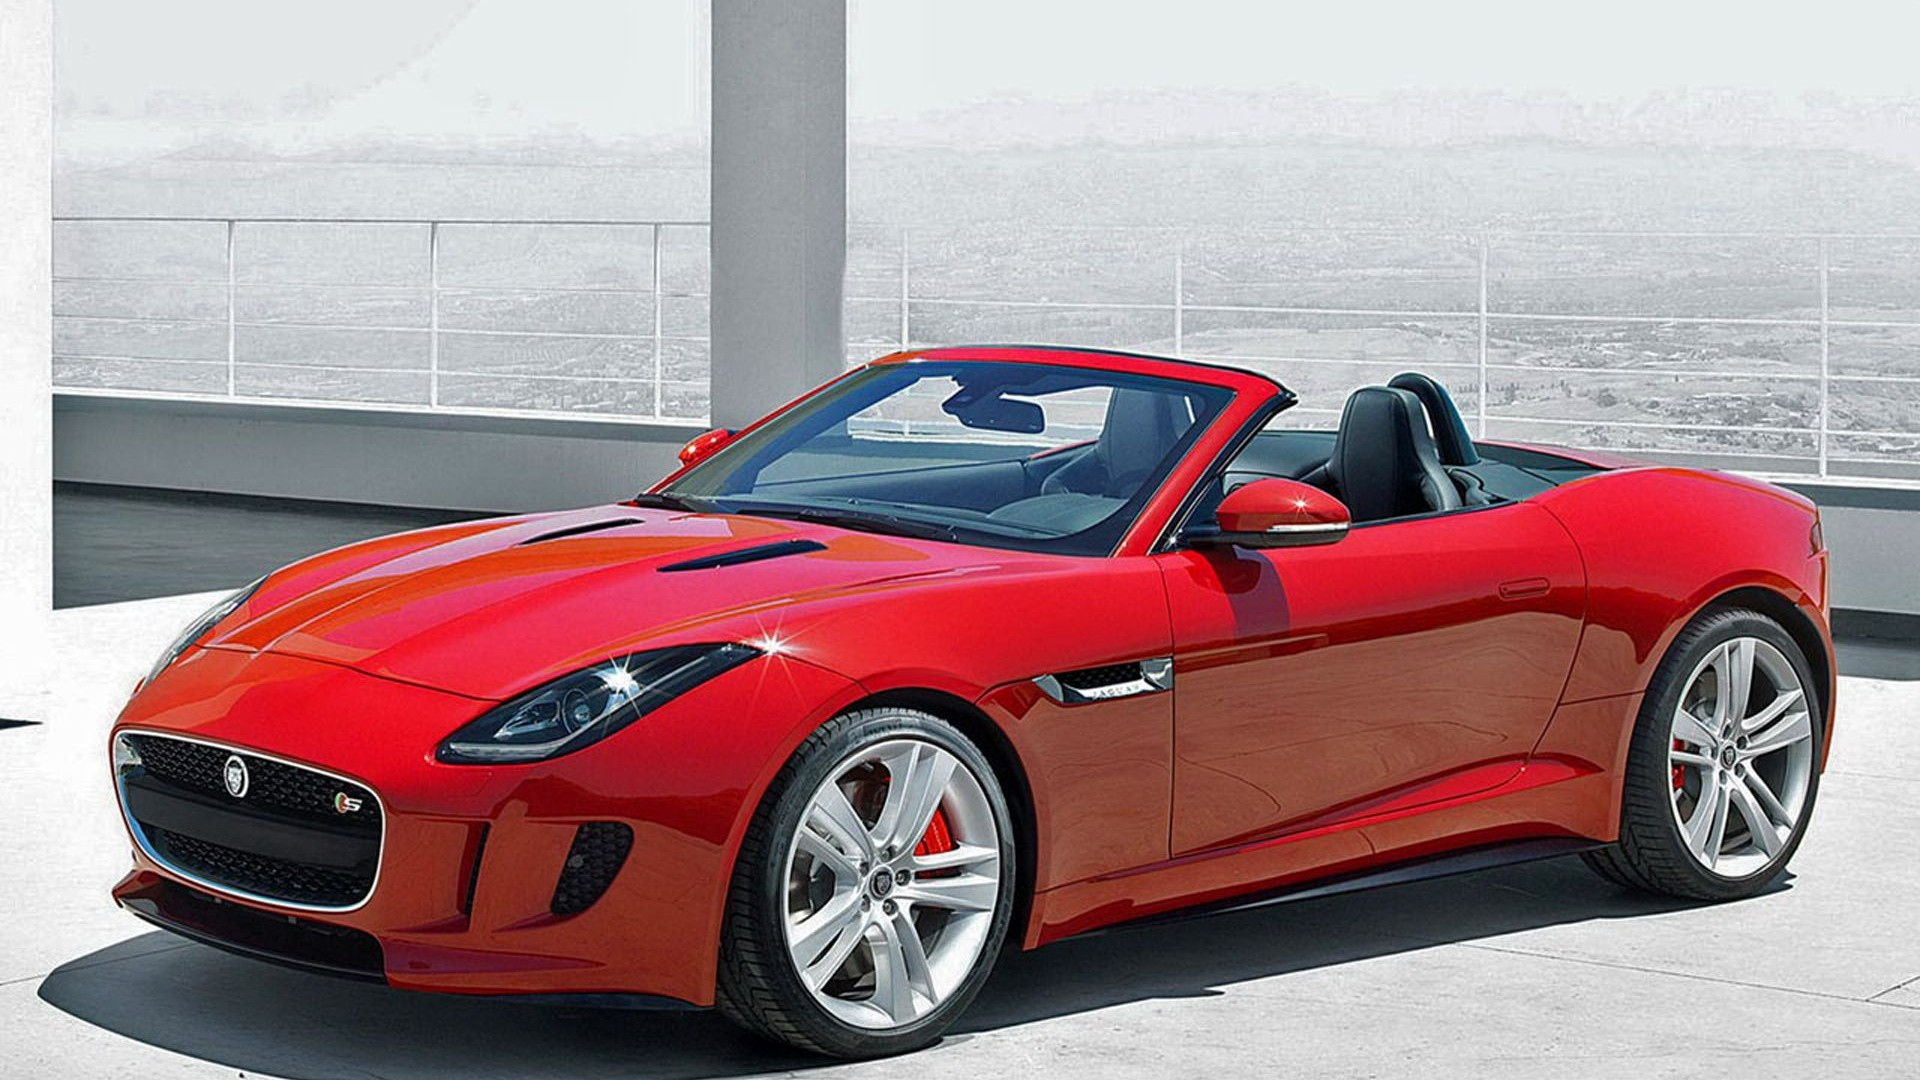 Jaguar F Type 2014 Exclusive HD Wallpapers 4421 1920x1080